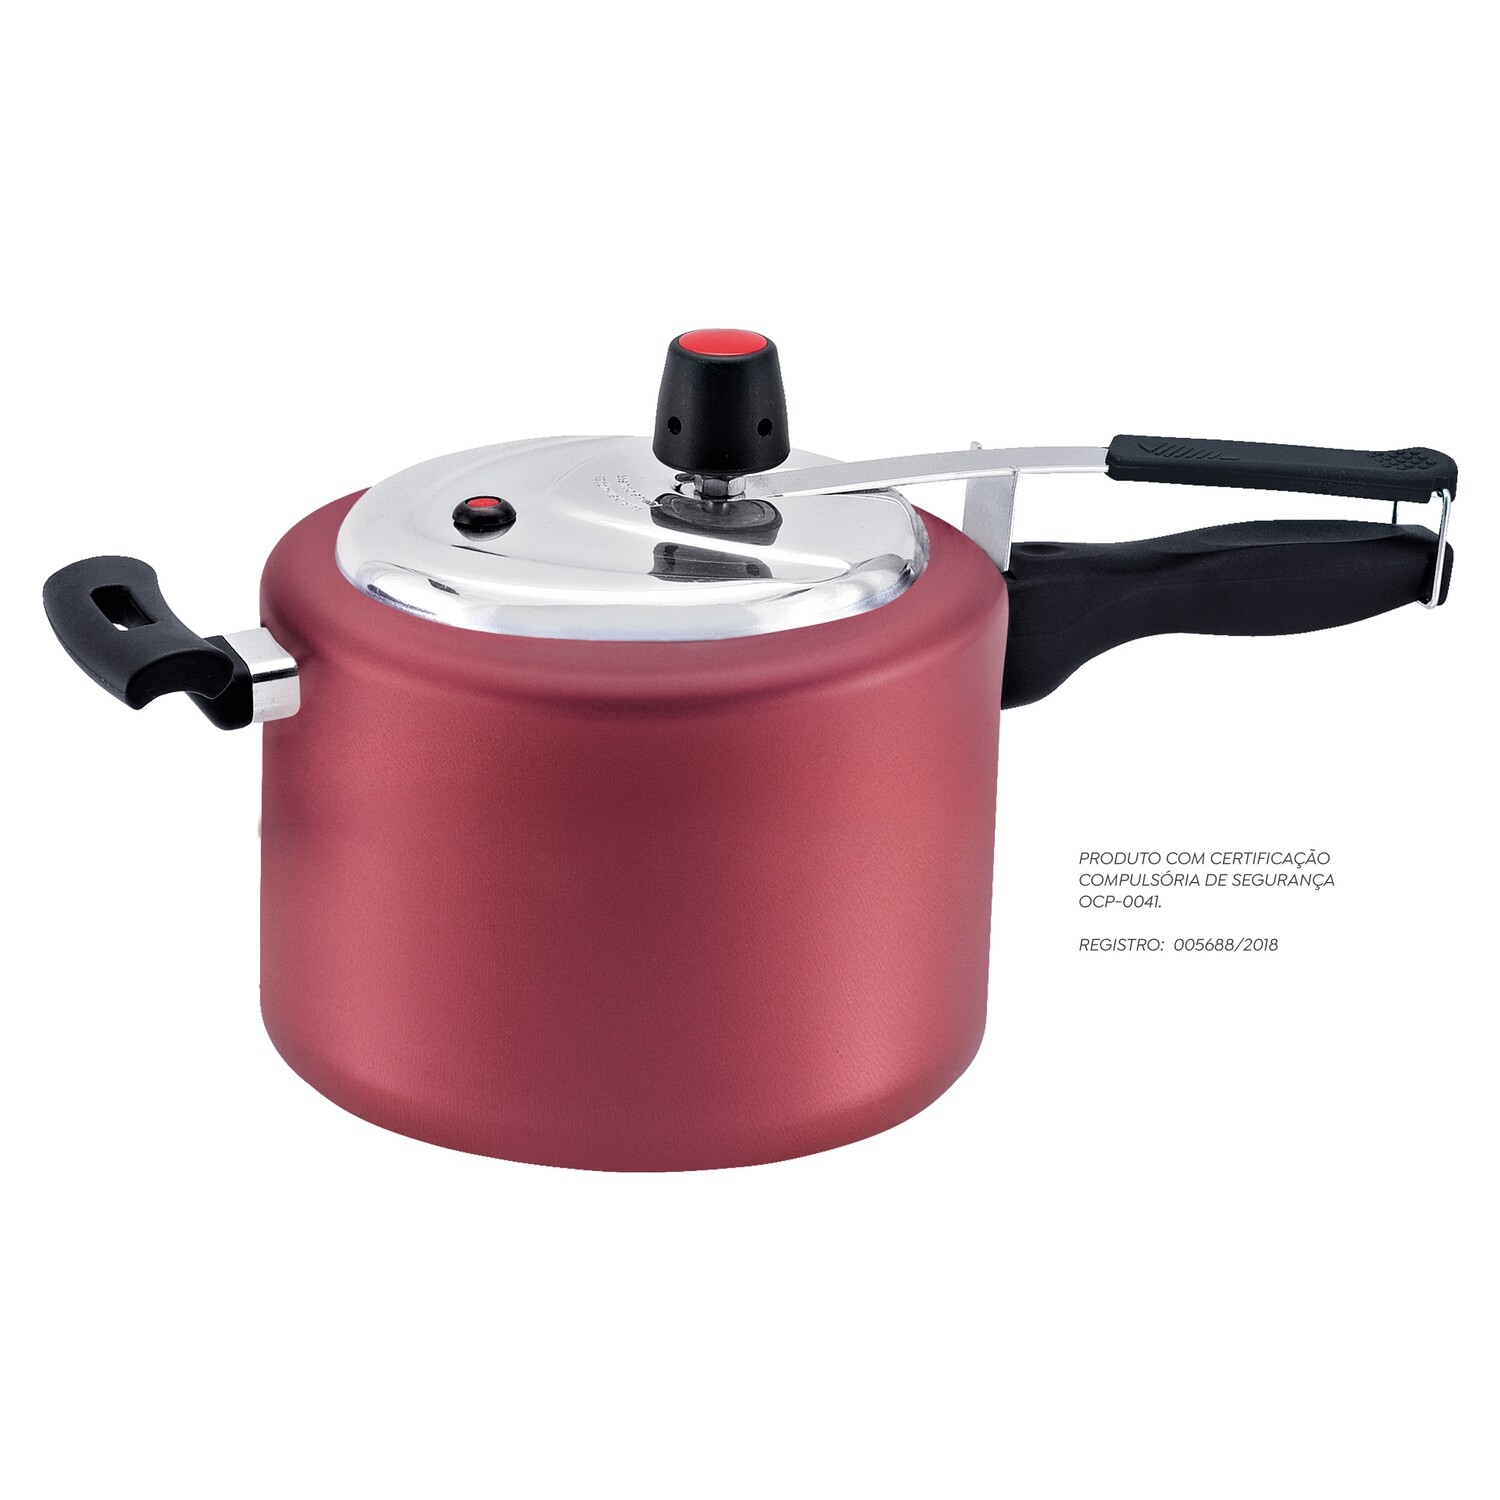 4,5 Non-Stick Turbo Pressure Cooker Cherry